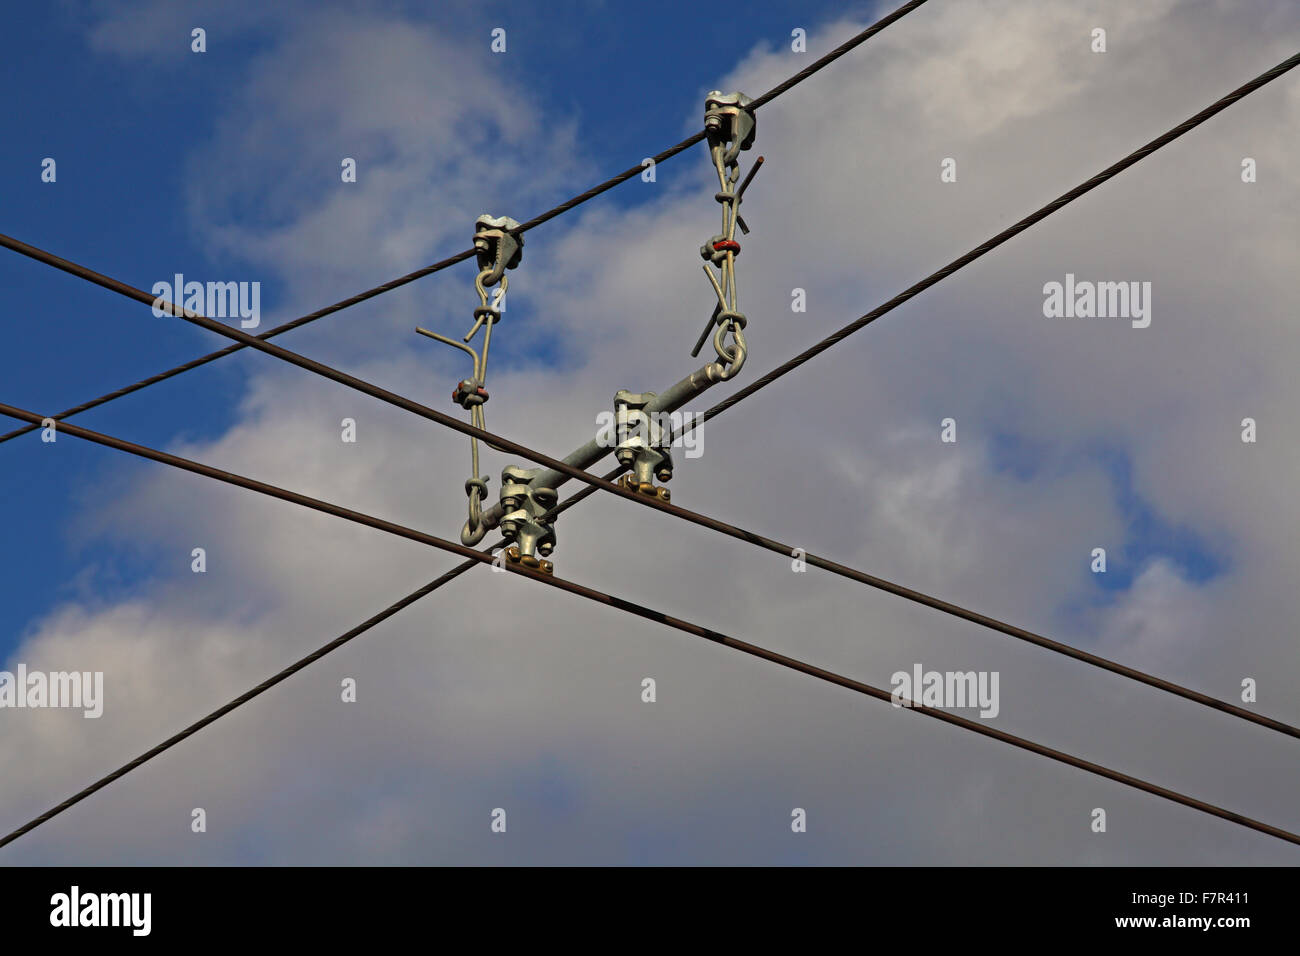 Overhead Electrical Conductors : Overhead electric conductor wire with quot hangers supporting